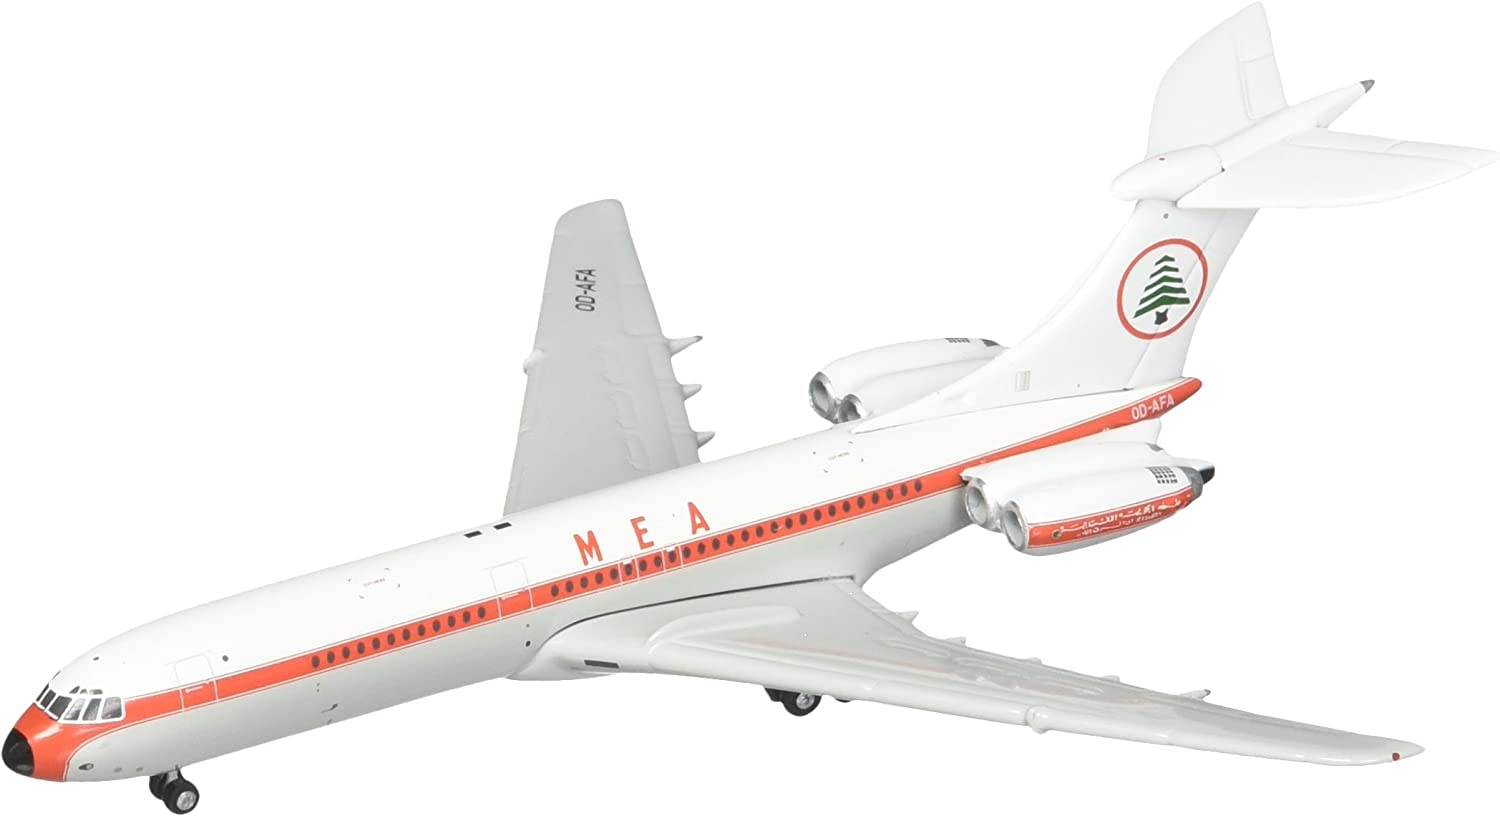 Gemini Jets Middle East Airlines VC-10 Standard 1:400 Scale MEA